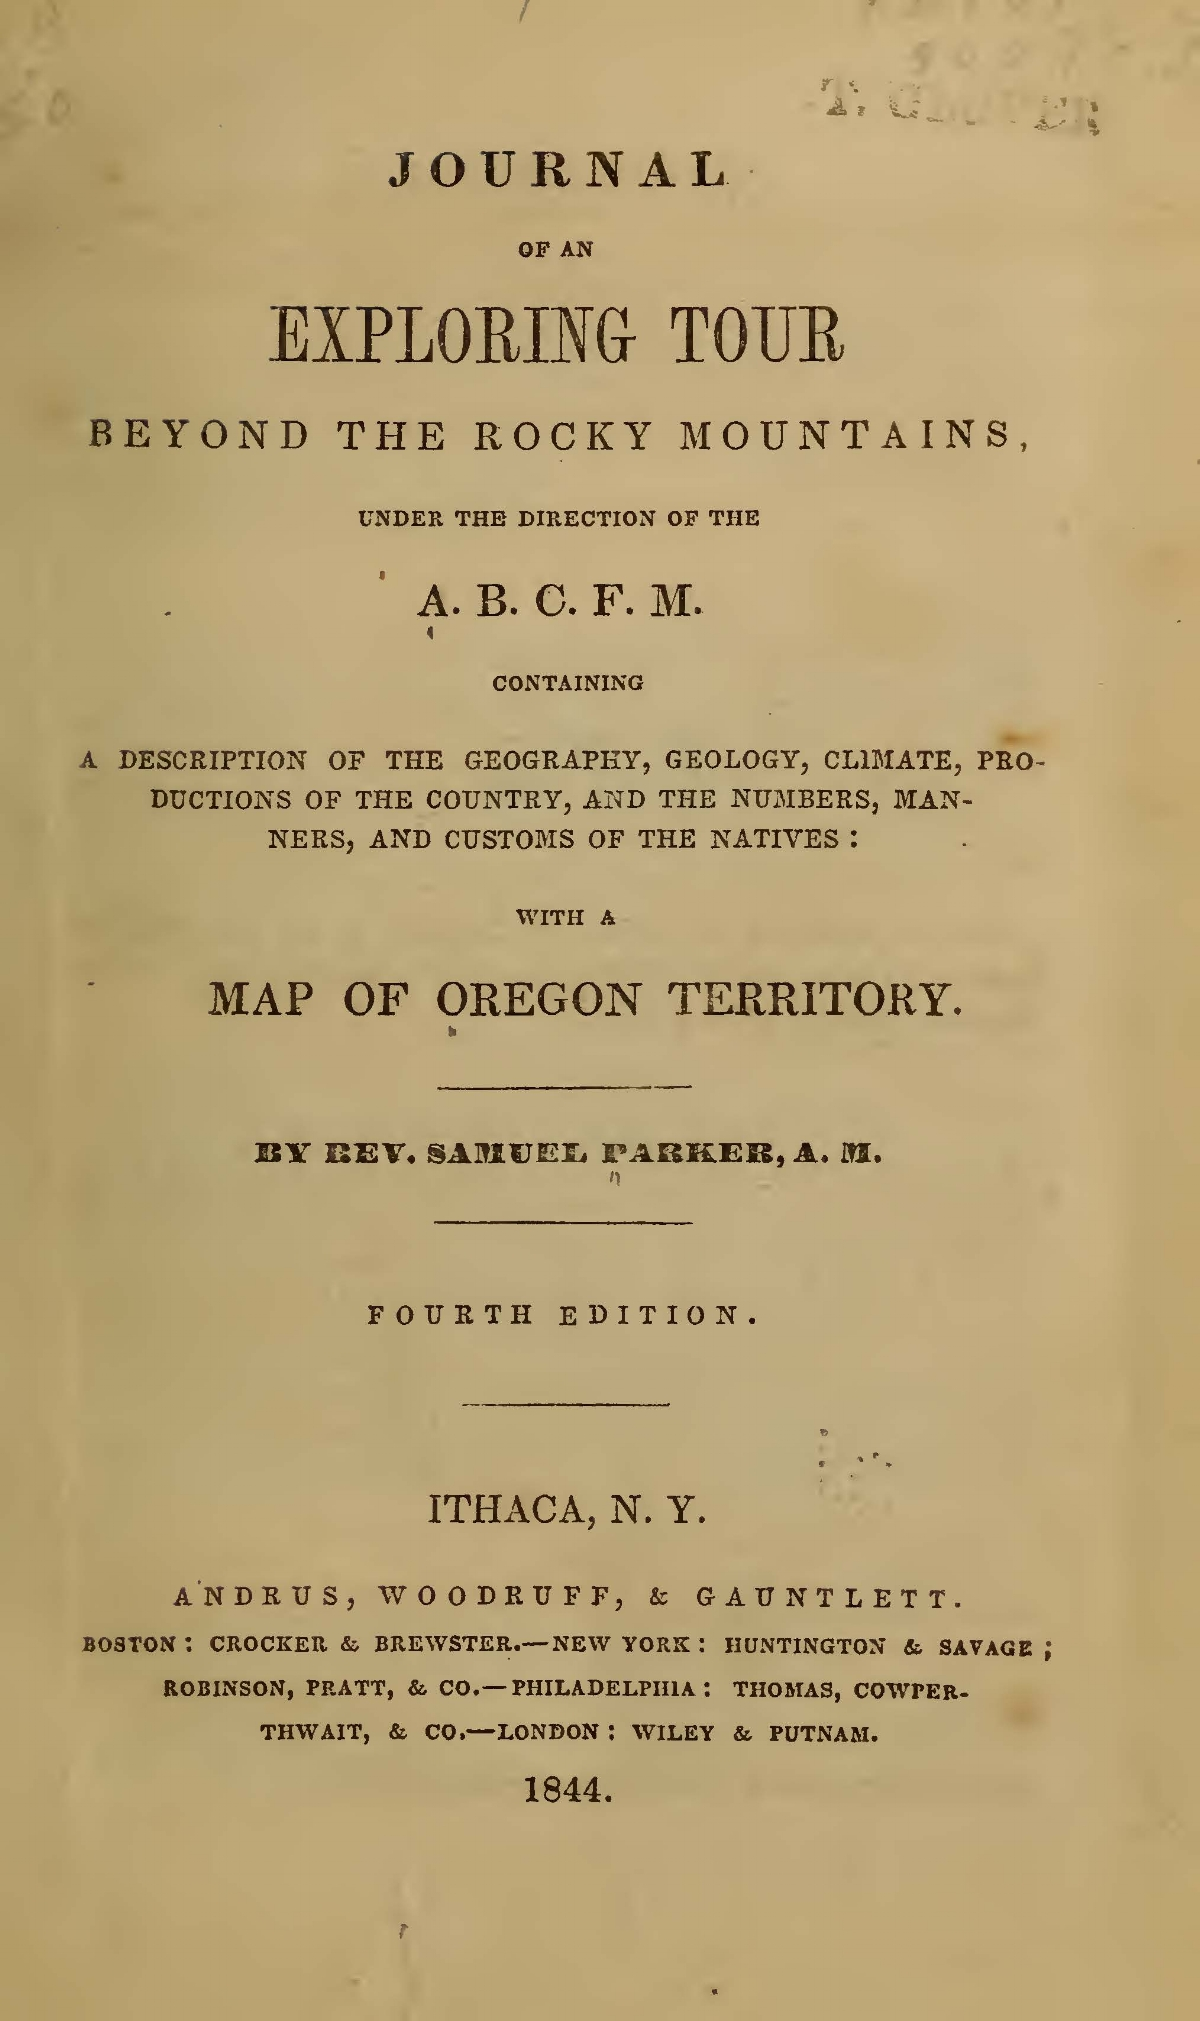 Parker, Samuel, Journal of an Exploring Tour Beyond the Rocky Mountains Title Page.jpg